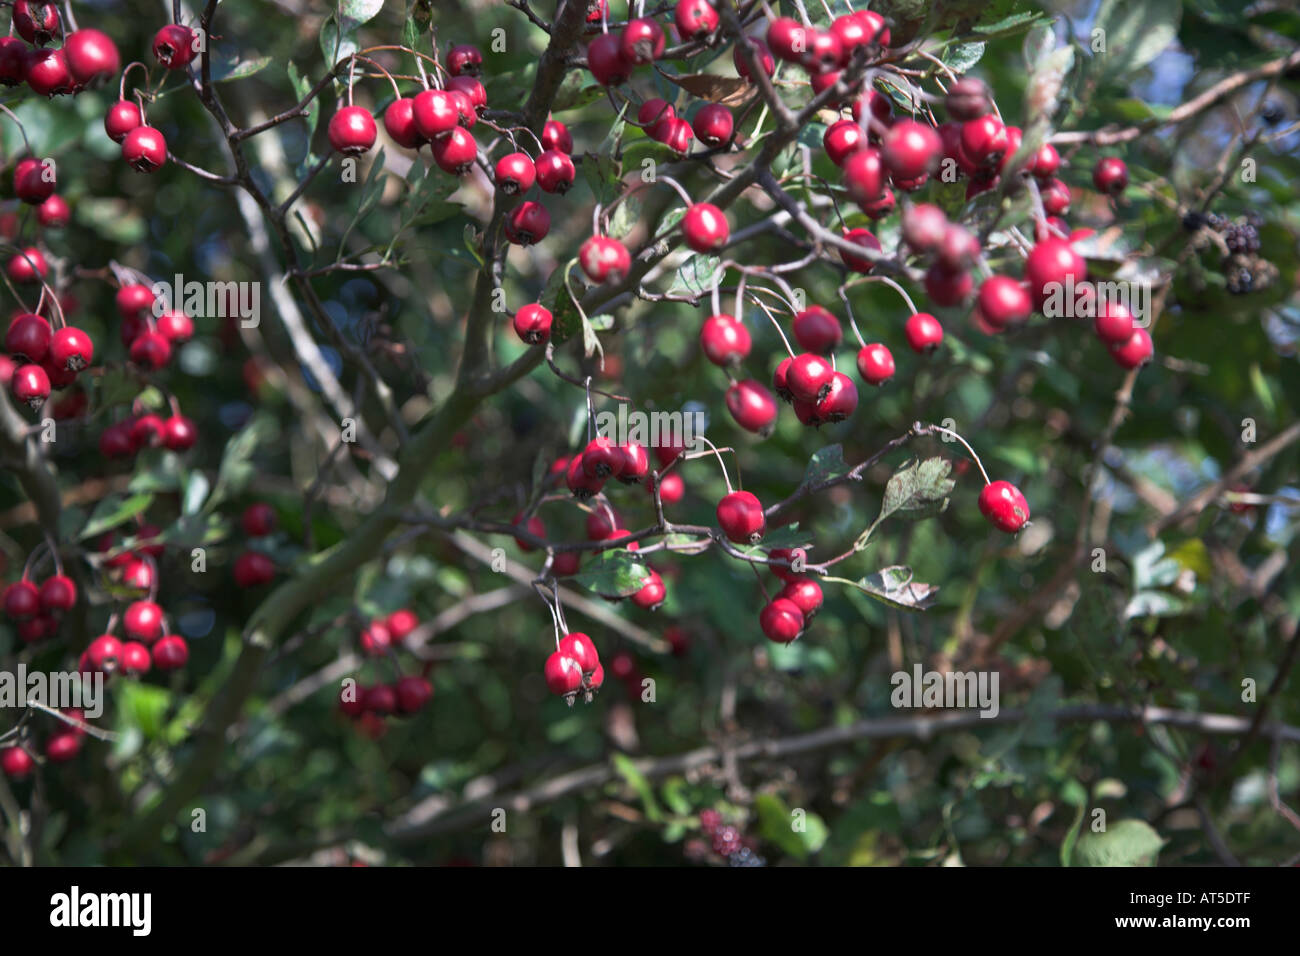 rote beeren auf wei dorn baum im englischen hecke stockfoto bild 9261902 alamy. Black Bedroom Furniture Sets. Home Design Ideas